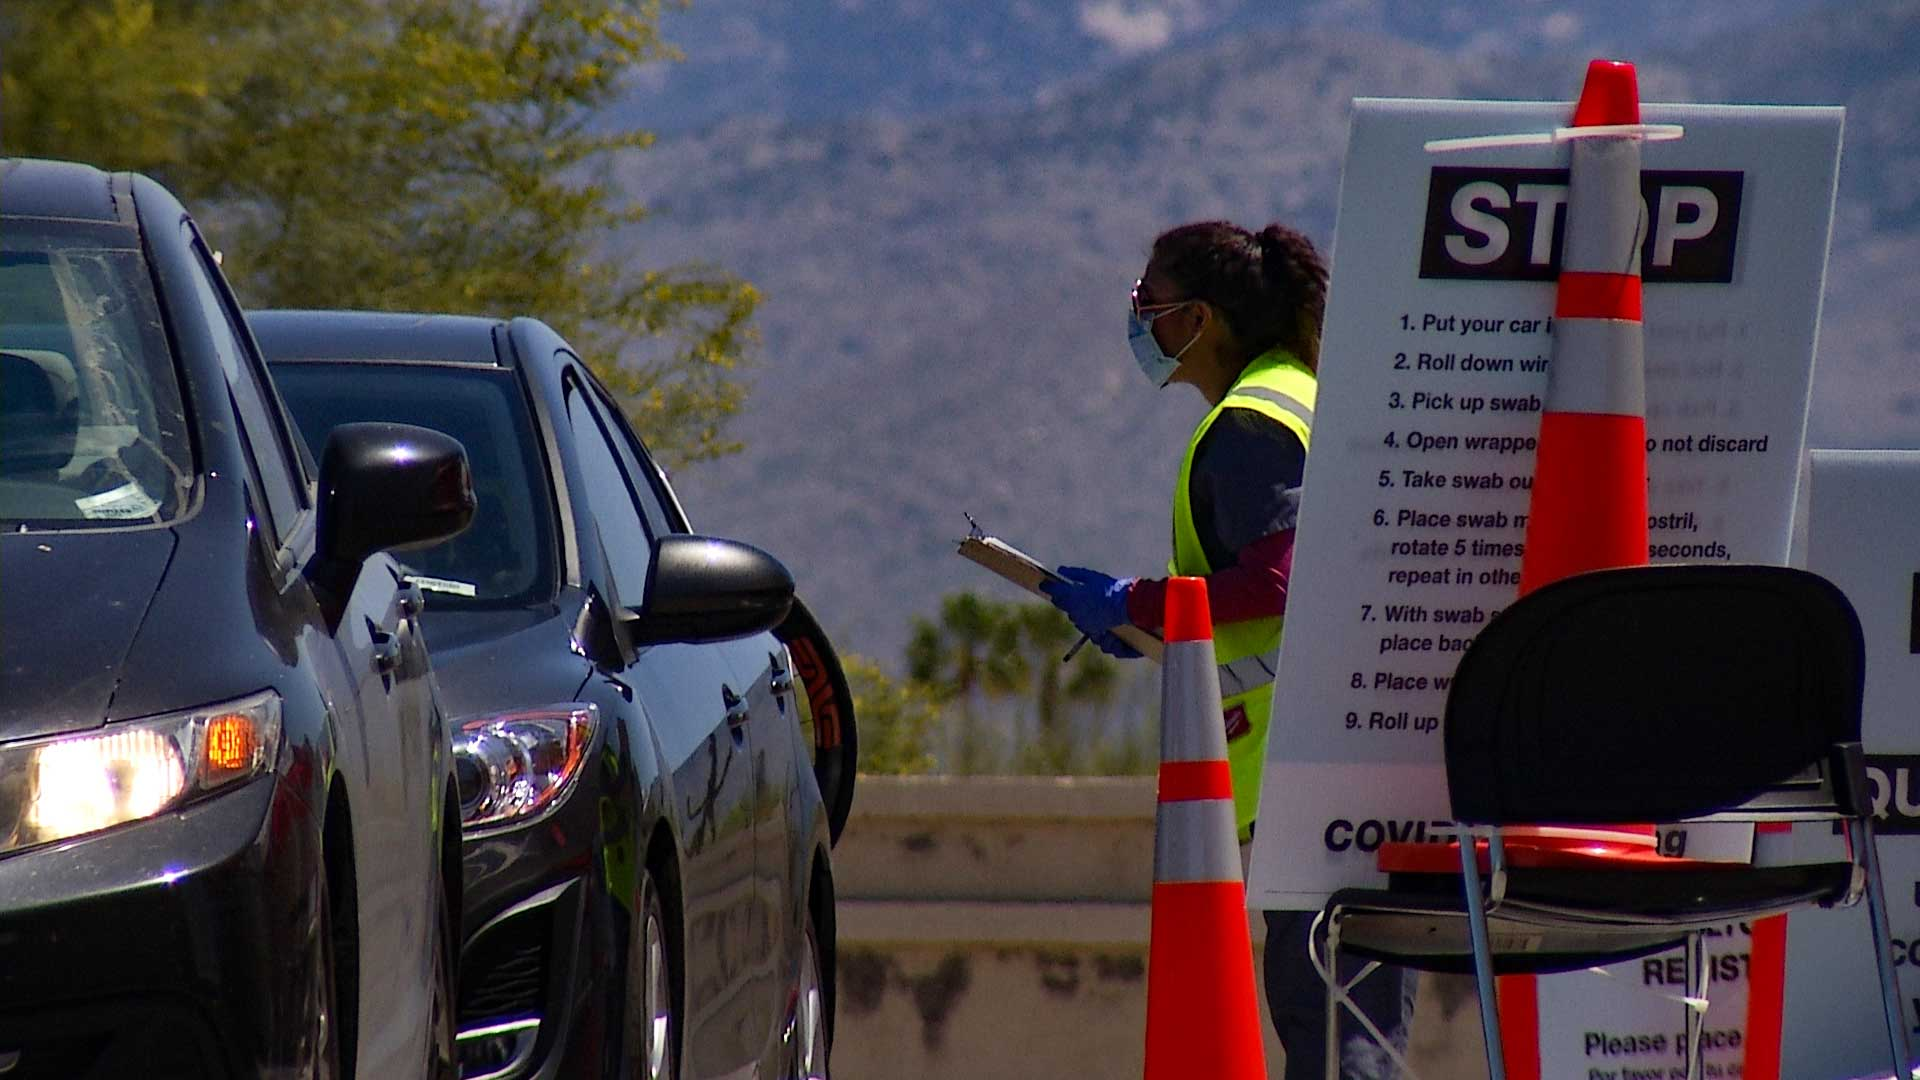 Drivers are screened at a Walgreens COVID-19 testing site in Tucson, April 21. Tucson was chosen as one of 15 locations nationwide for the expansion of drive-thru testing sites by Walgreens.